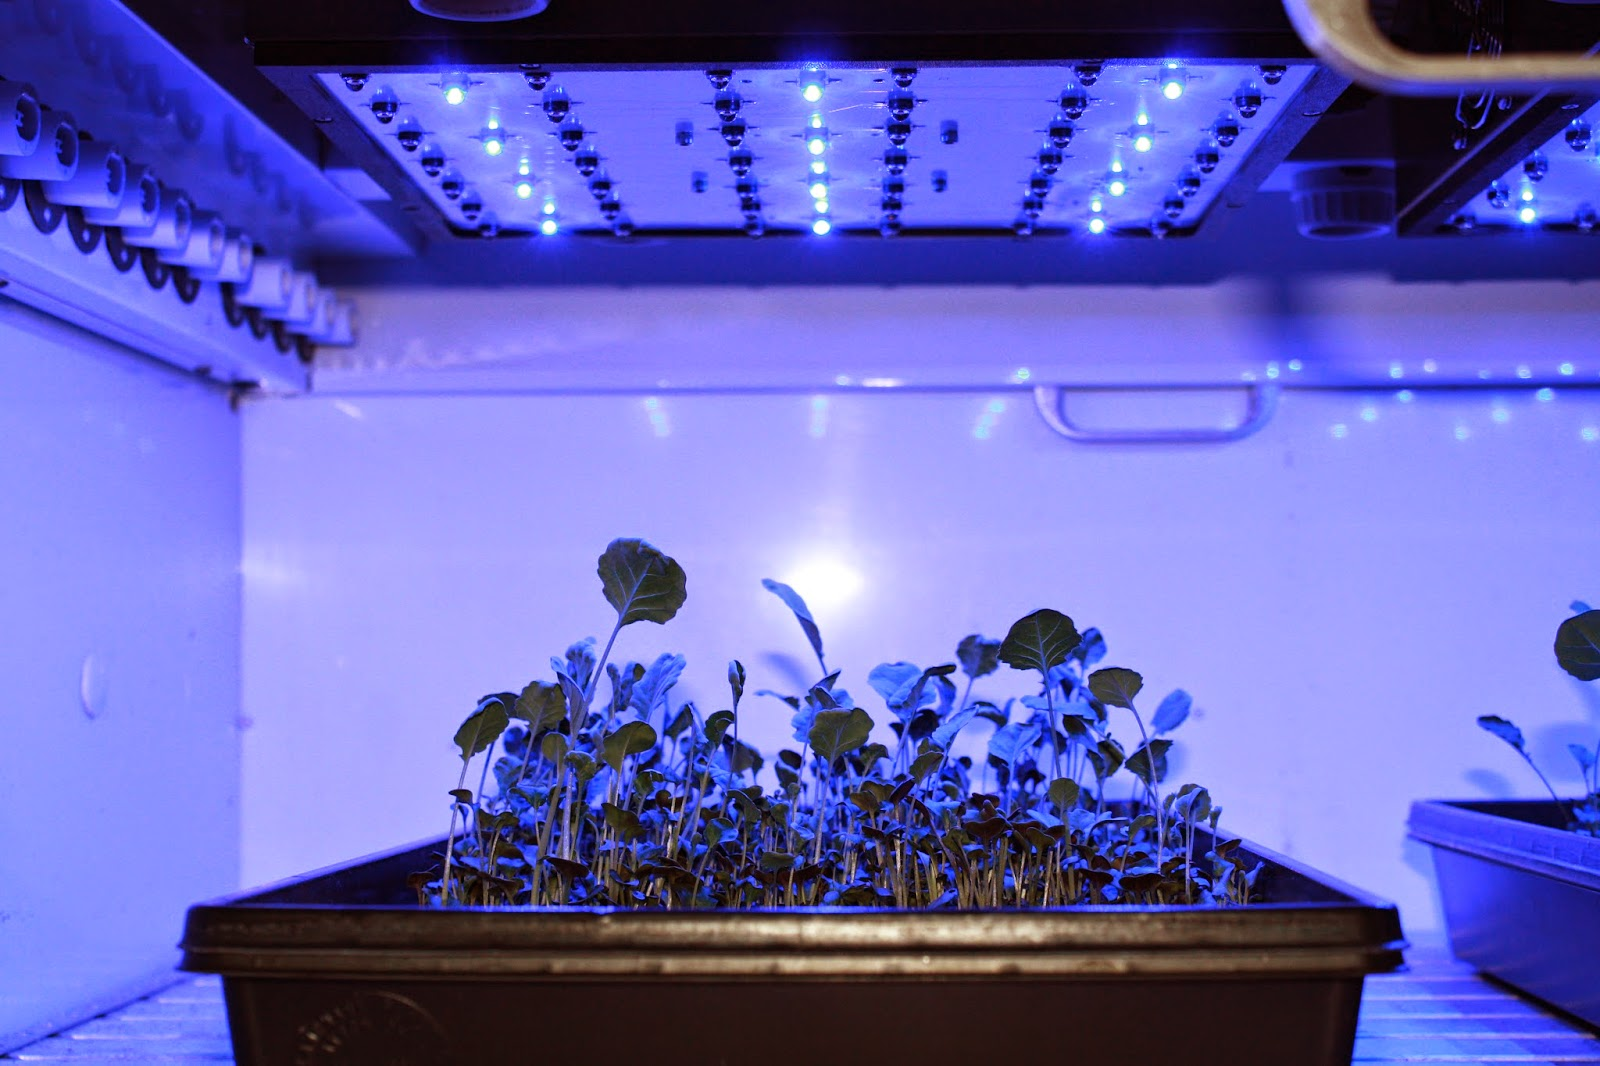 Blue-light LEDs and broccoli microgreens, Dean Kopsell, Univ. of Tenn.